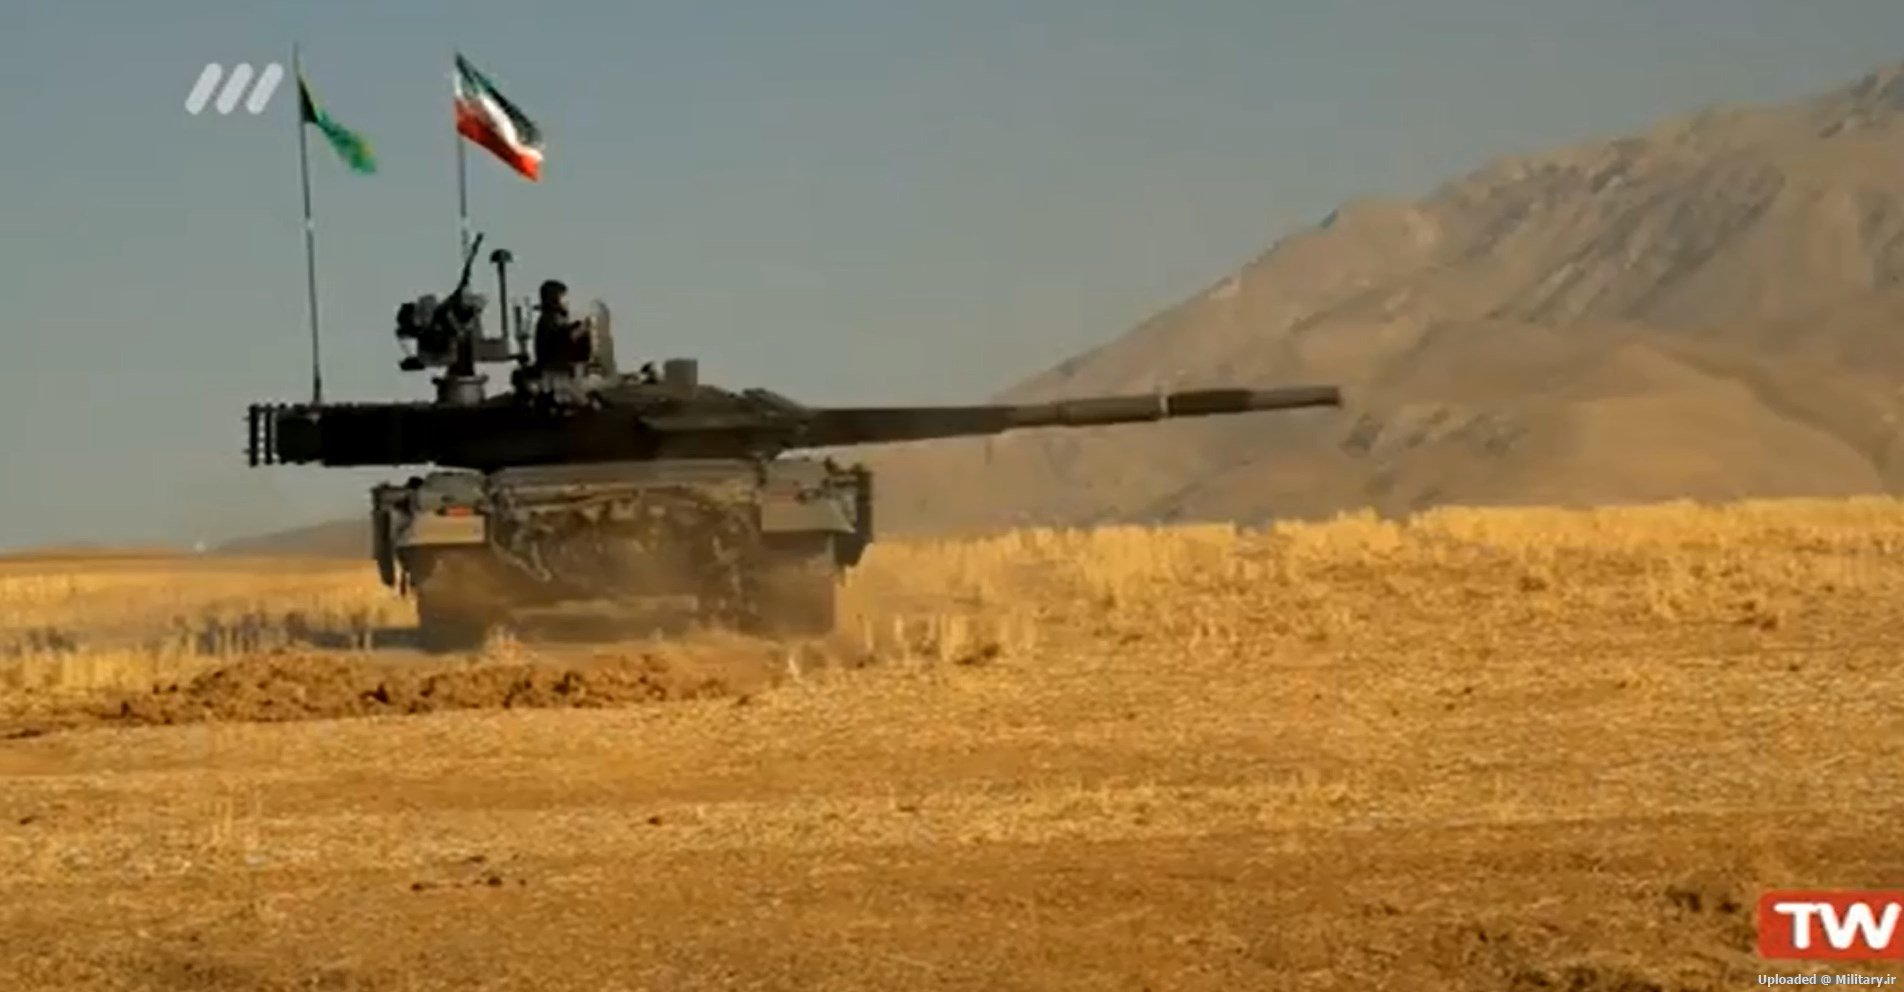 Iranian Ground Forces | News and Equipment - Page 3 Bandicam_2016-08-25_11-53-03-787_mp4_snapshot_00_59_5B2016_08_25_12_05_045D